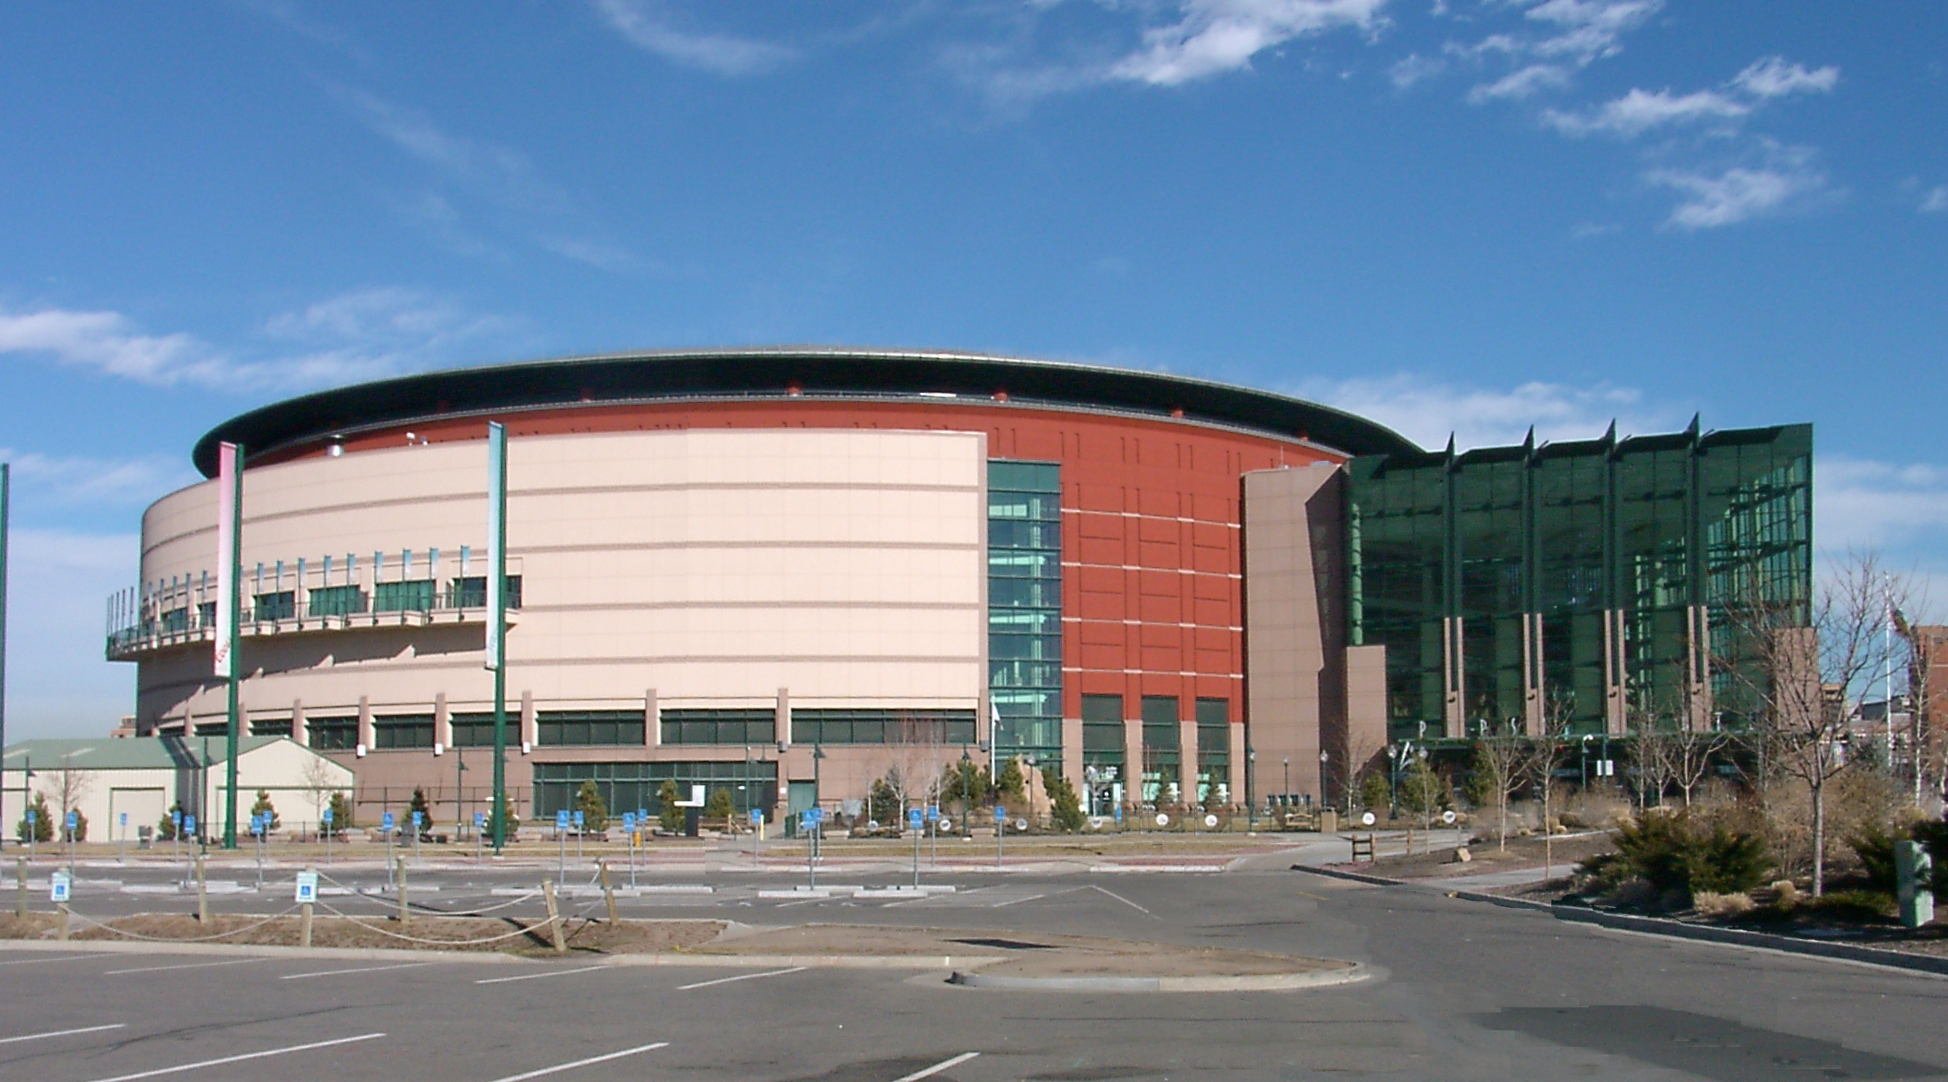 Pepsi Center: Tim's Sports World: Wide World Of Sports Venue-January 8